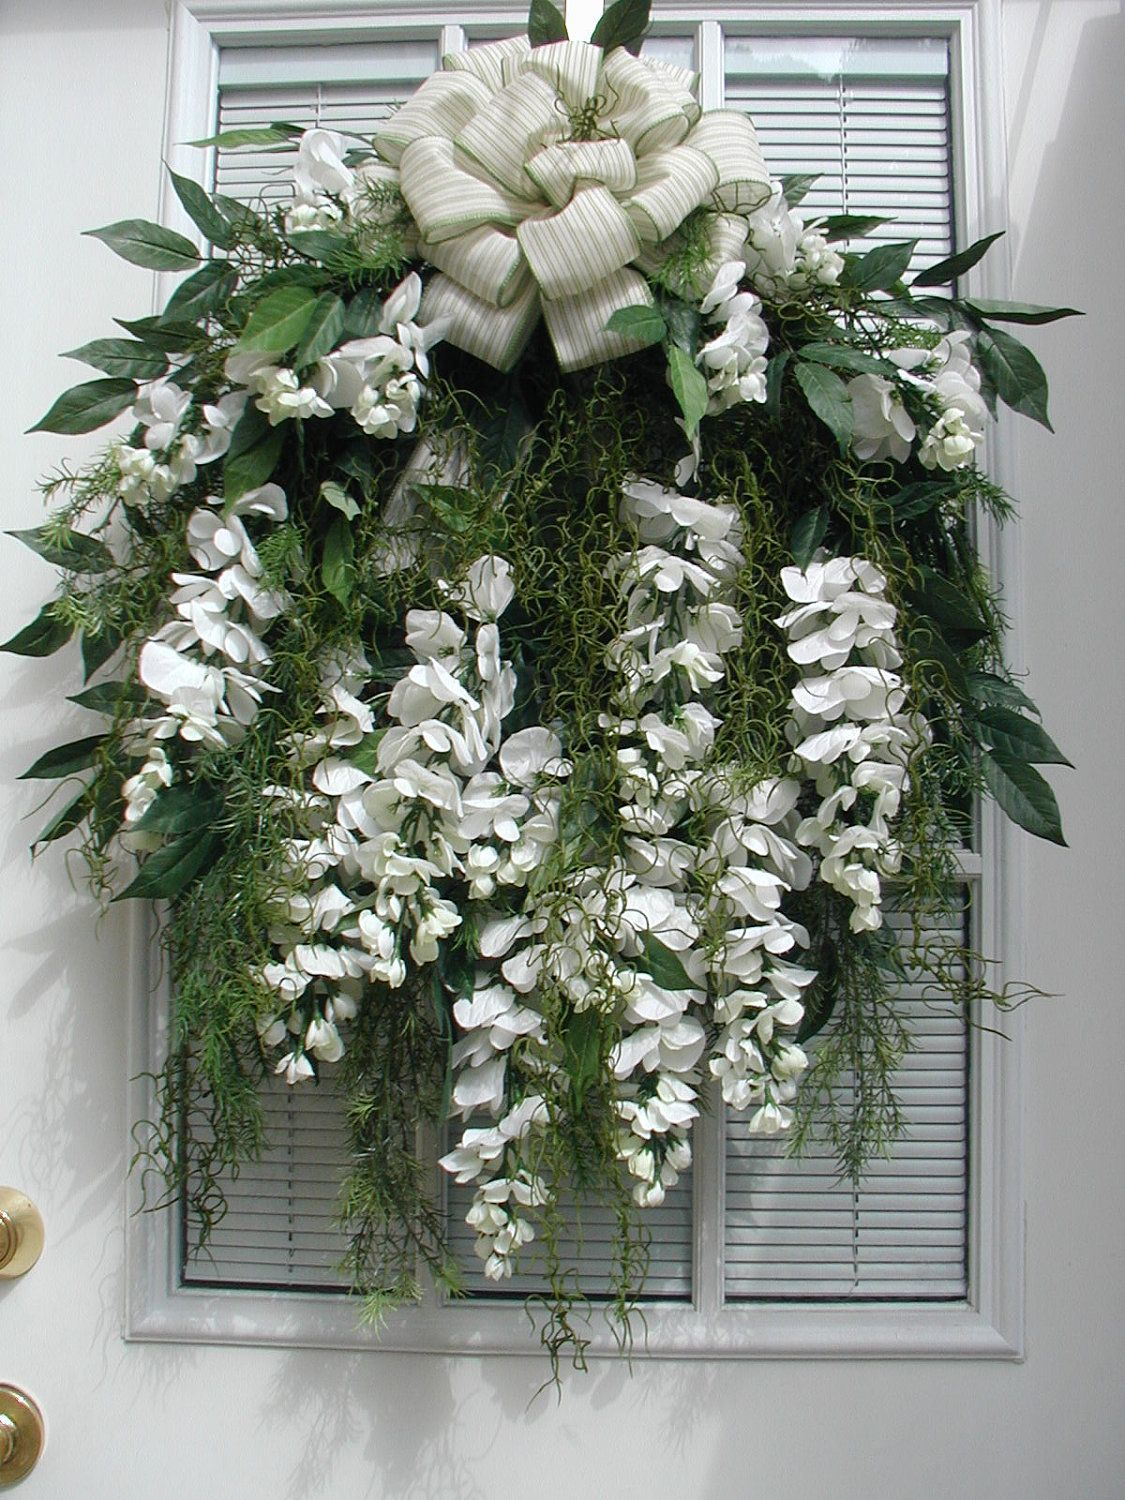 Spring Summer White Wisteria Lane Draping Curly Ferns Door Decor Wall Hanging Wreath